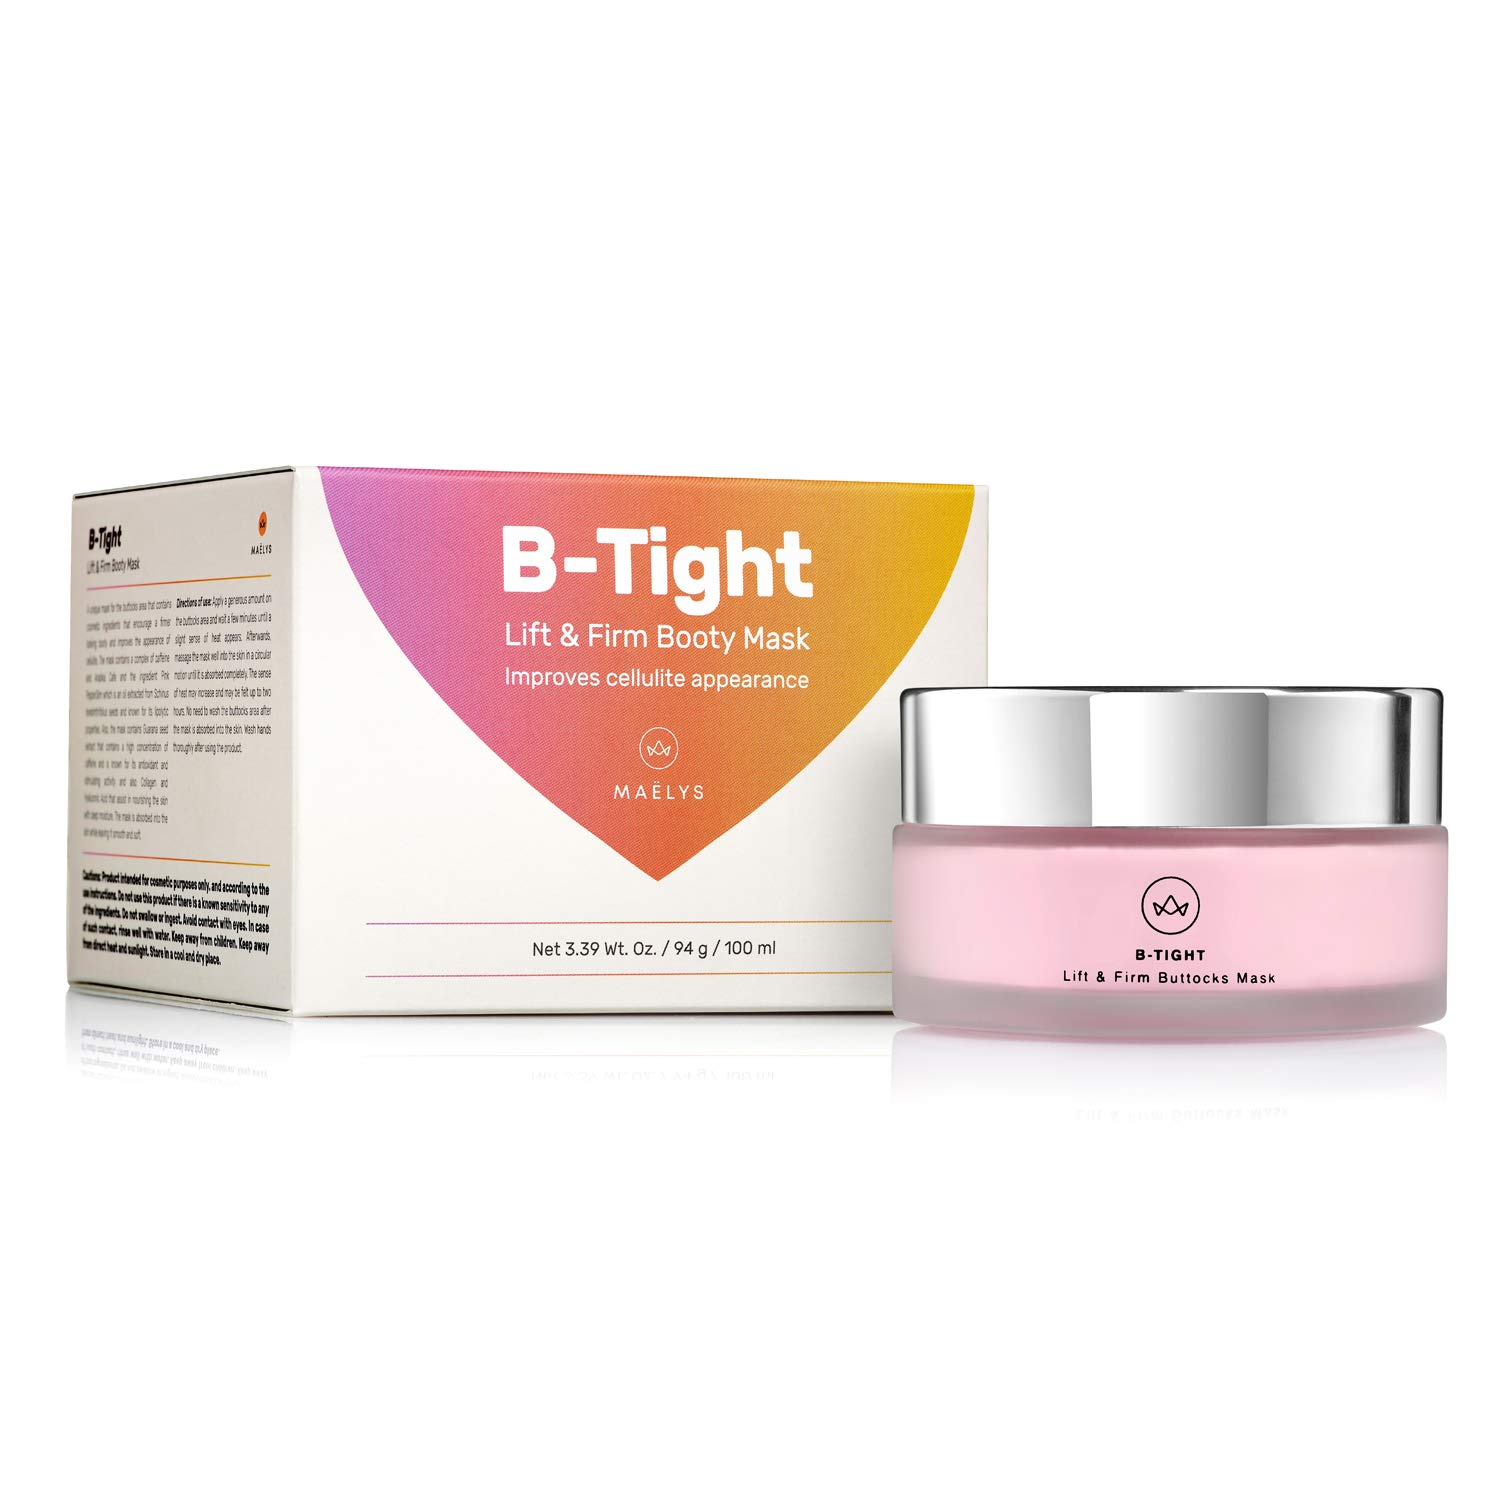 B-Tight Cellulite Removal Cream - Anti Cellulite Skin Firming Treatment for Butt & Thighs, Burns Fat, Lifts & Firms 3.8 oz by MAELYS Cosmetics (Image #8)